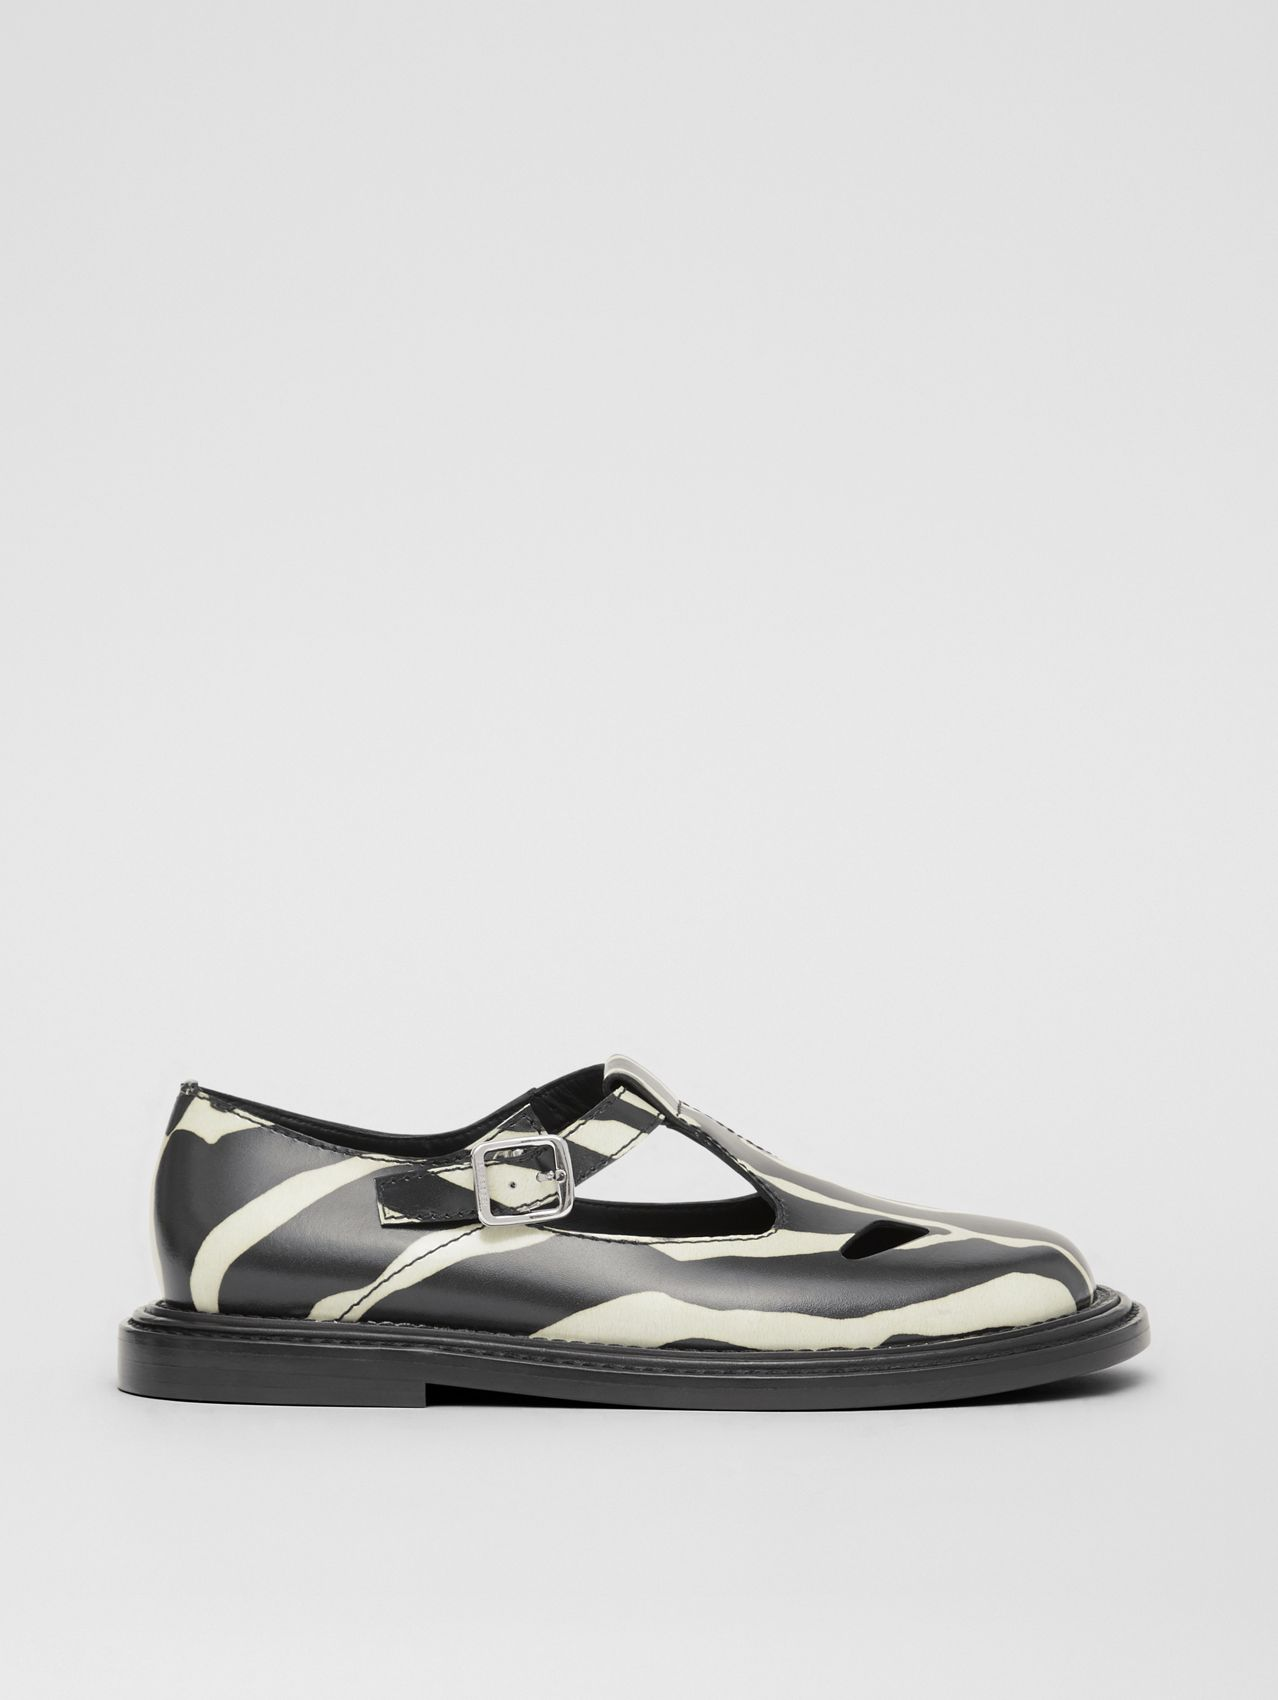 Zebra Print Leather T-bar Shoes (Black/white)